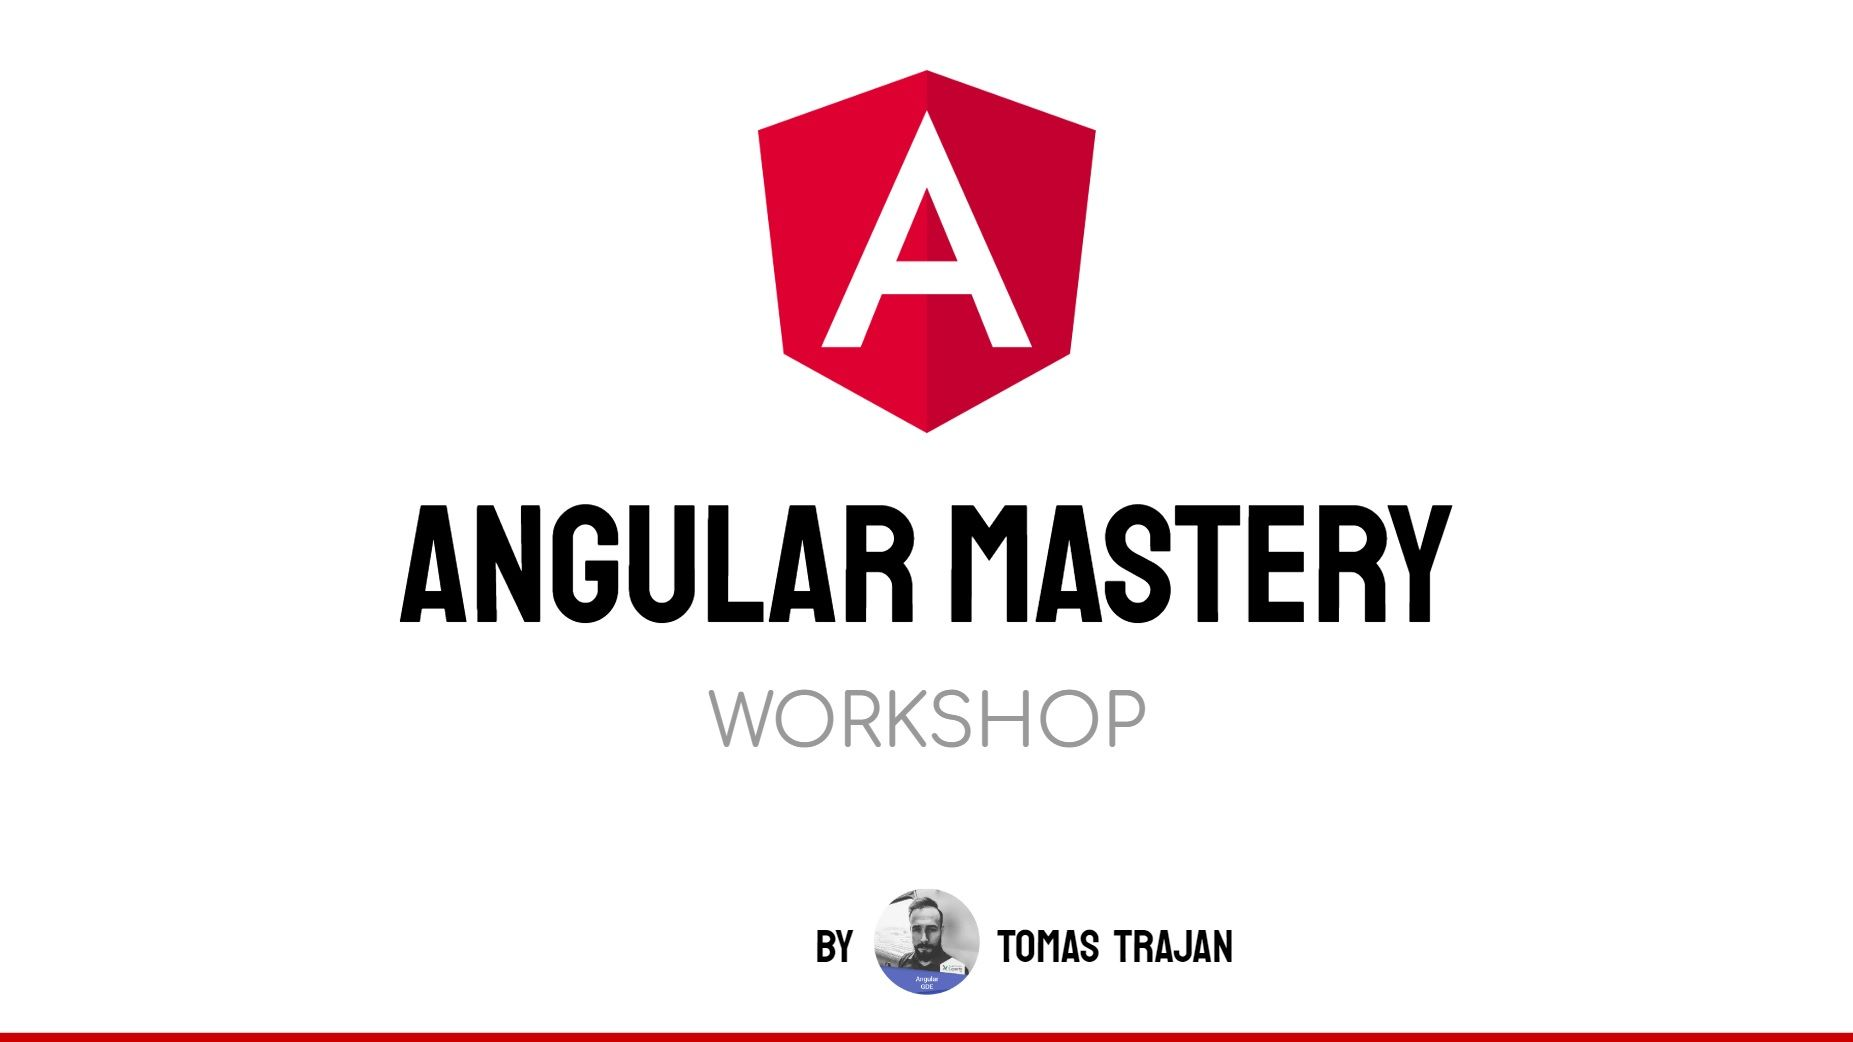 Angular Mastery Workshop by Tomas Trajan - Example